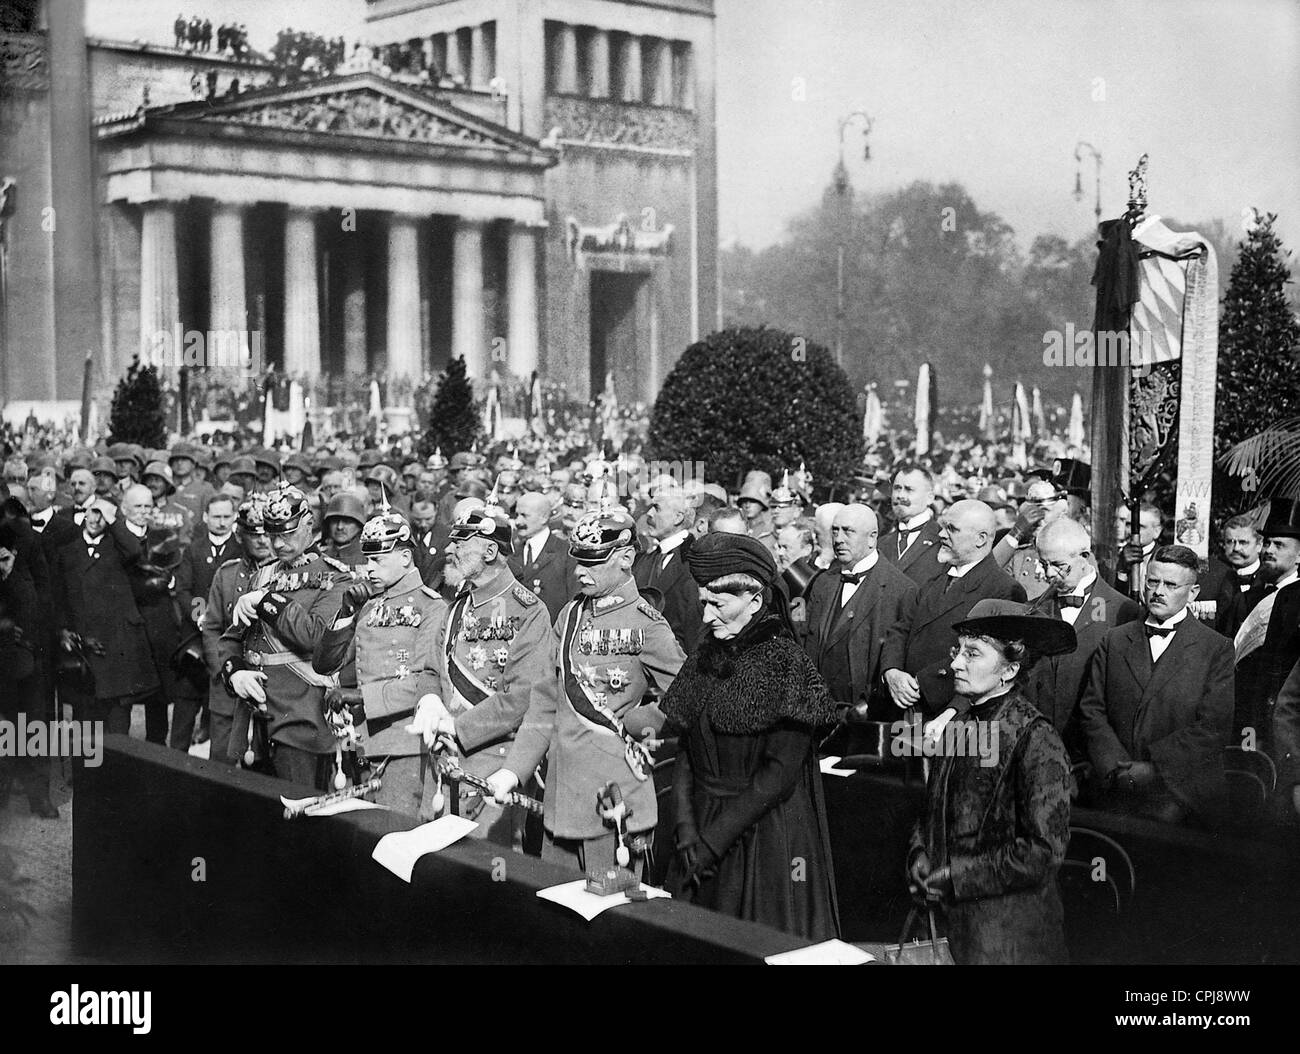 Memorial Day on 9 October in Munich, 1921